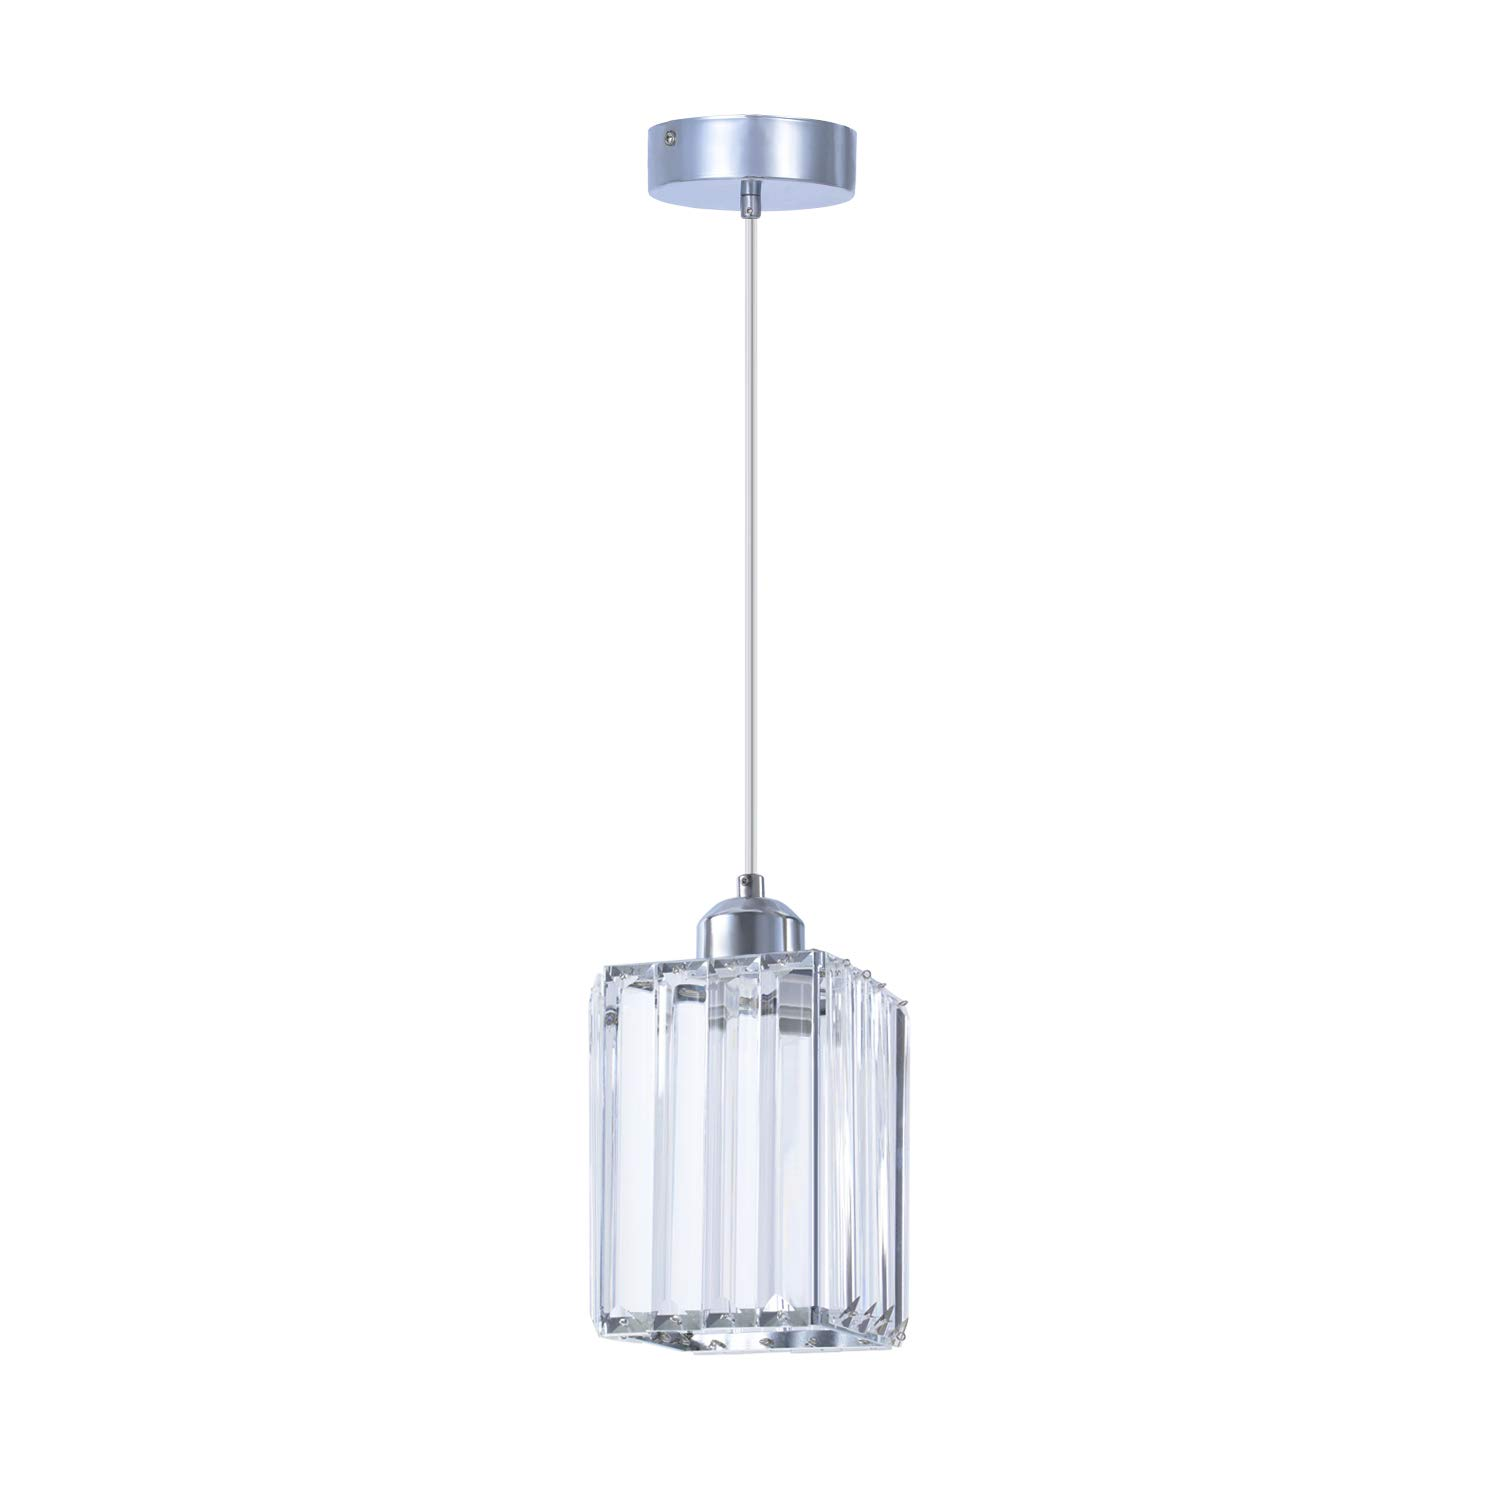 ShengQing Mini Crystal Pendant Light in Chrome Finish with Clear Crystal 1-Light Modern Square Shape Crystal Hang Light Fixture for Bar Kitchen Dining Room Bedroom Farmhouse, Adjustable Clear Cord by ShengQing